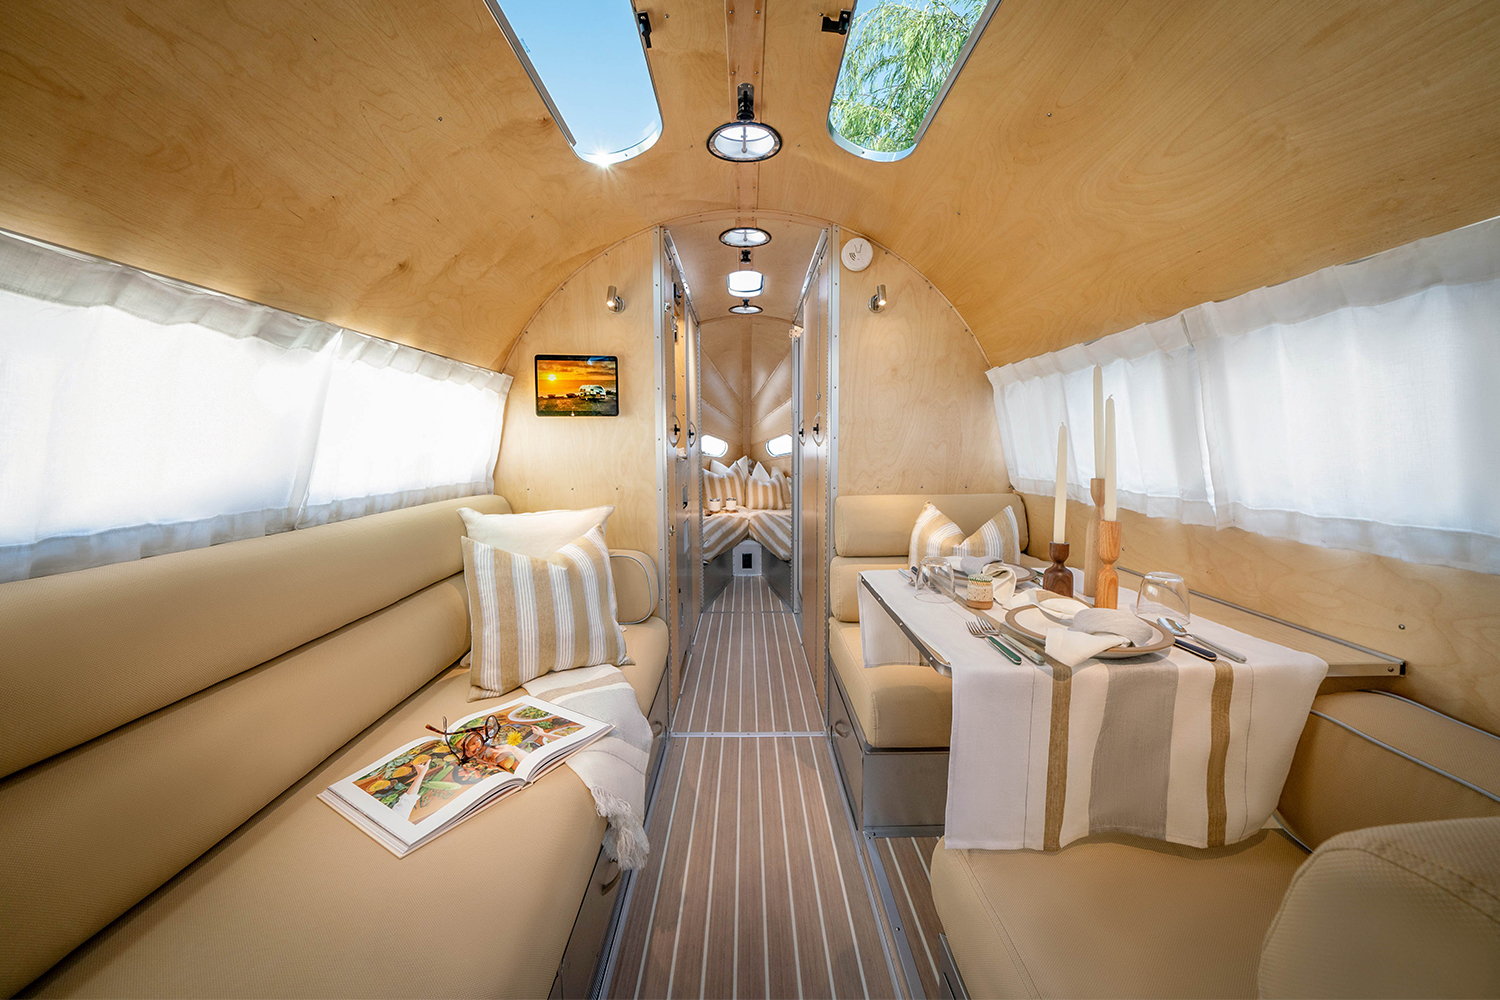 Bowlus travel trailer interior